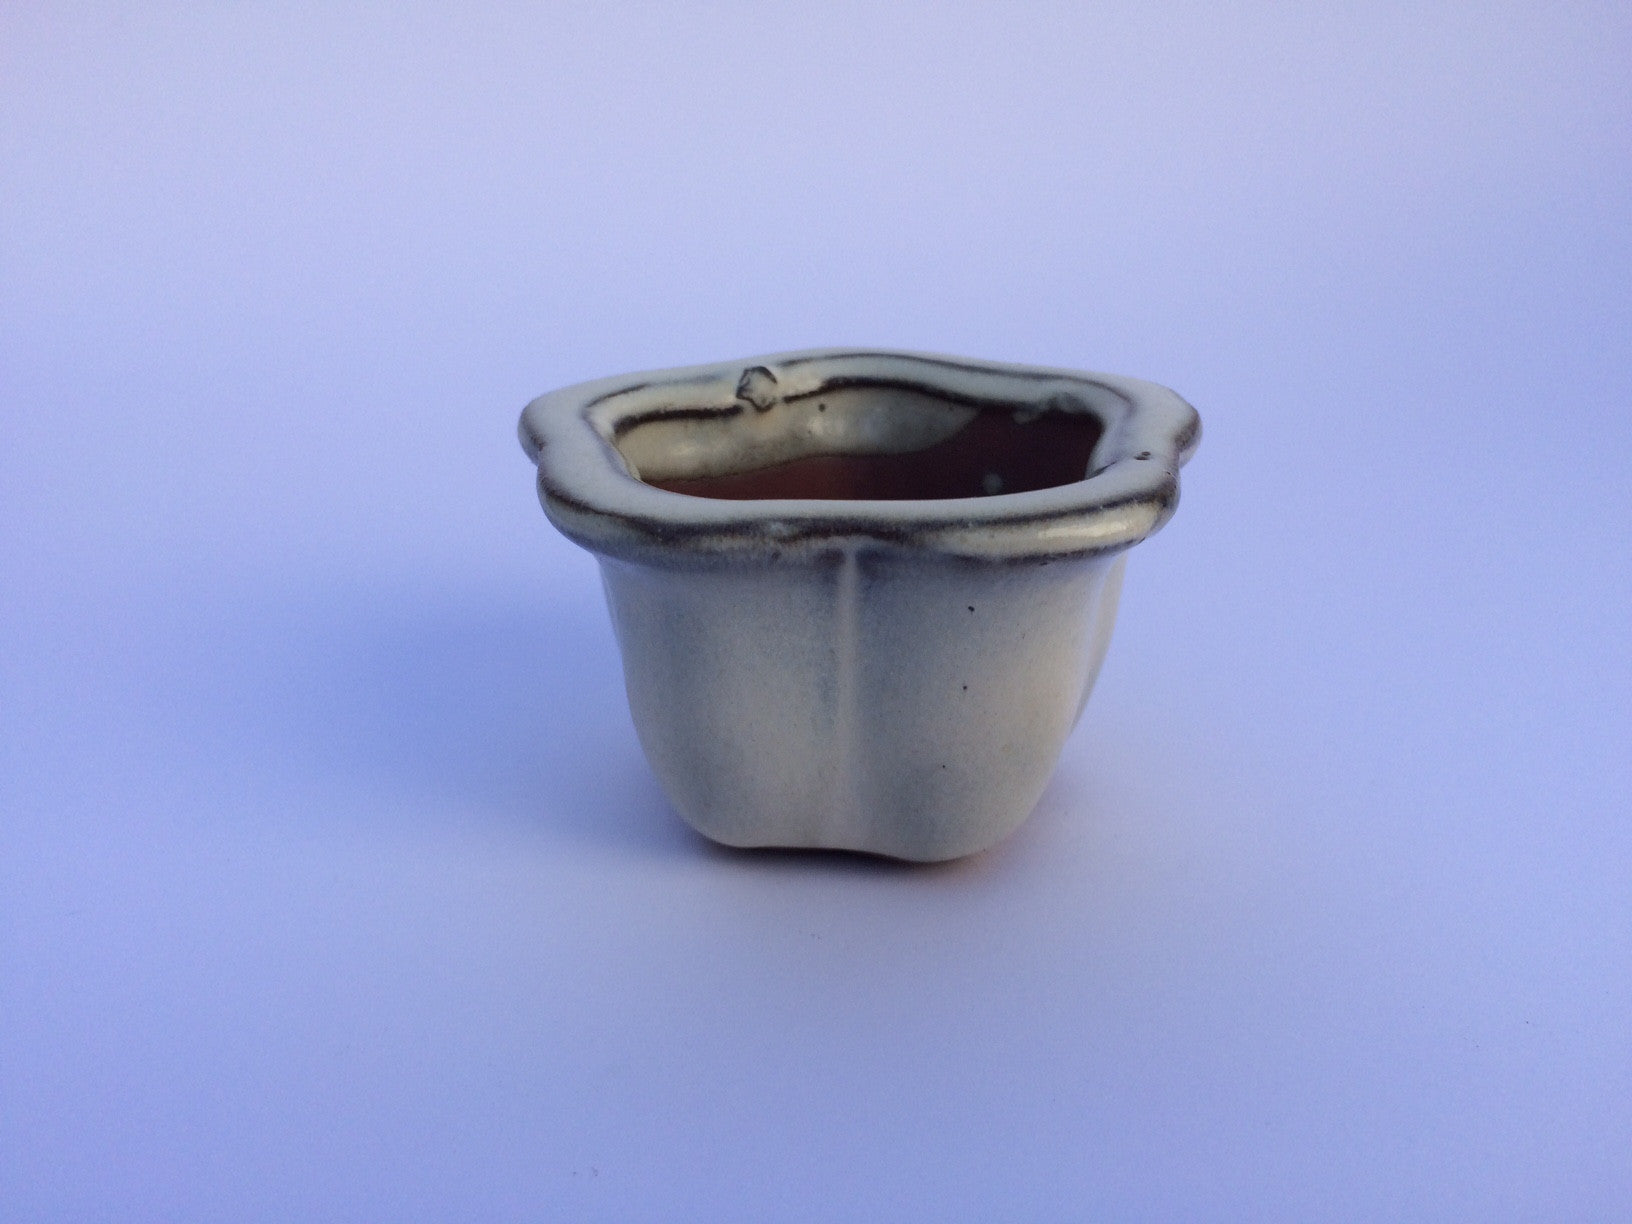 7cm x 7cm x 5cm Glazed Bonsai Container - Cream